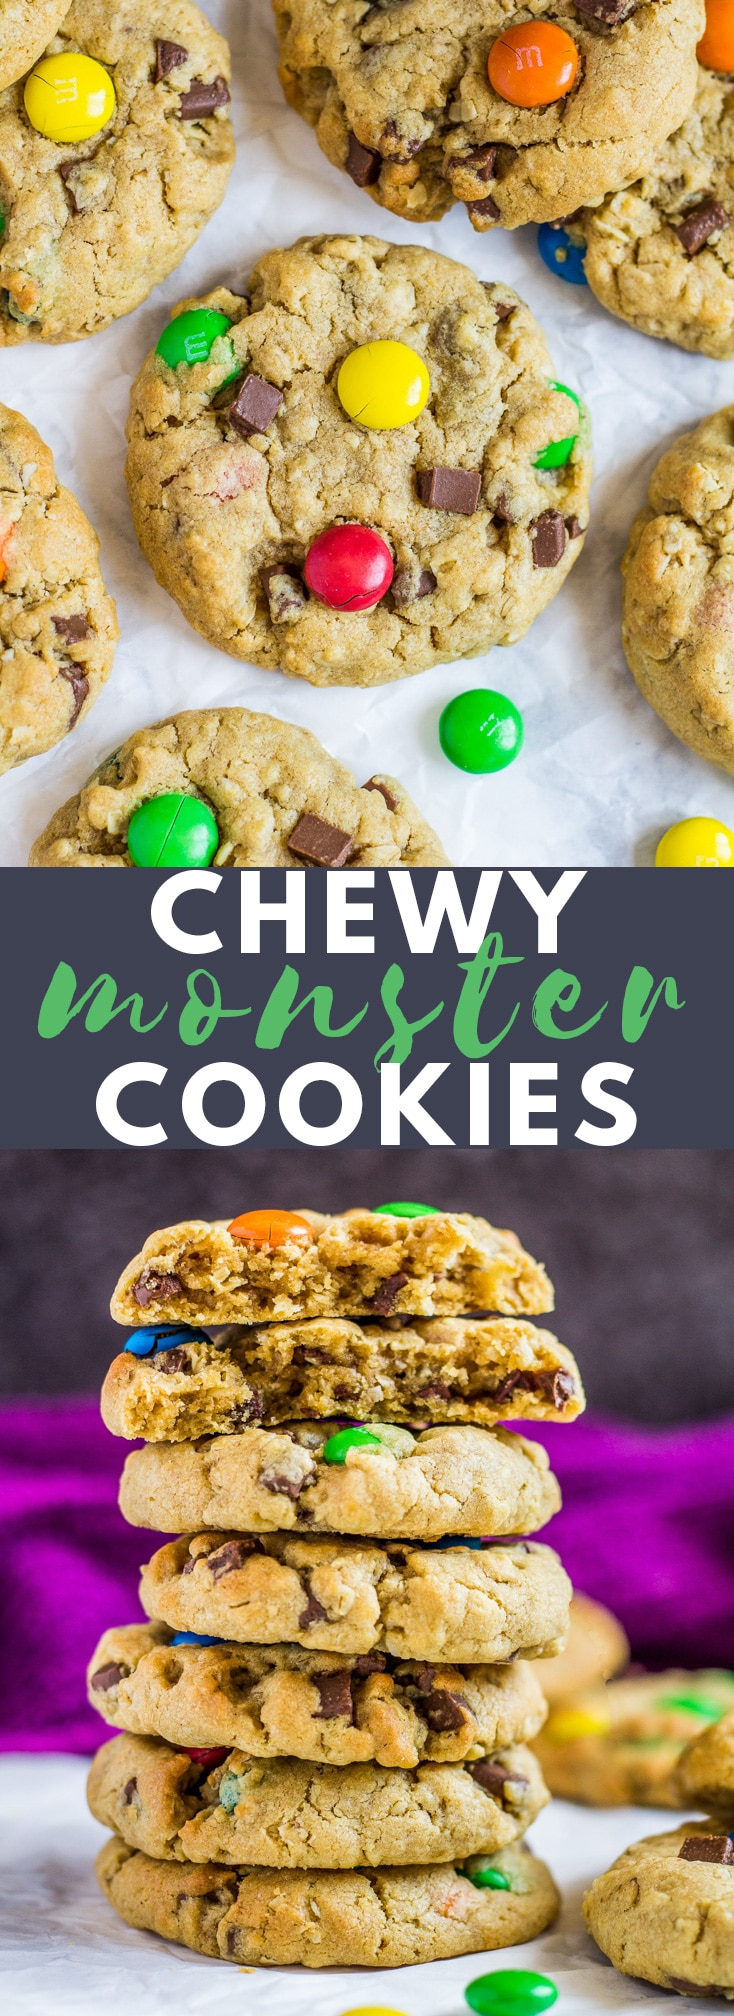 Soft and Chewy Monster Cookies- Deliciously thick, soft and chewy peanut butter cookies stuffed full of oats, M&Ms, and chocolate chips! #peanutbutter #monstercookies #cookierecipes